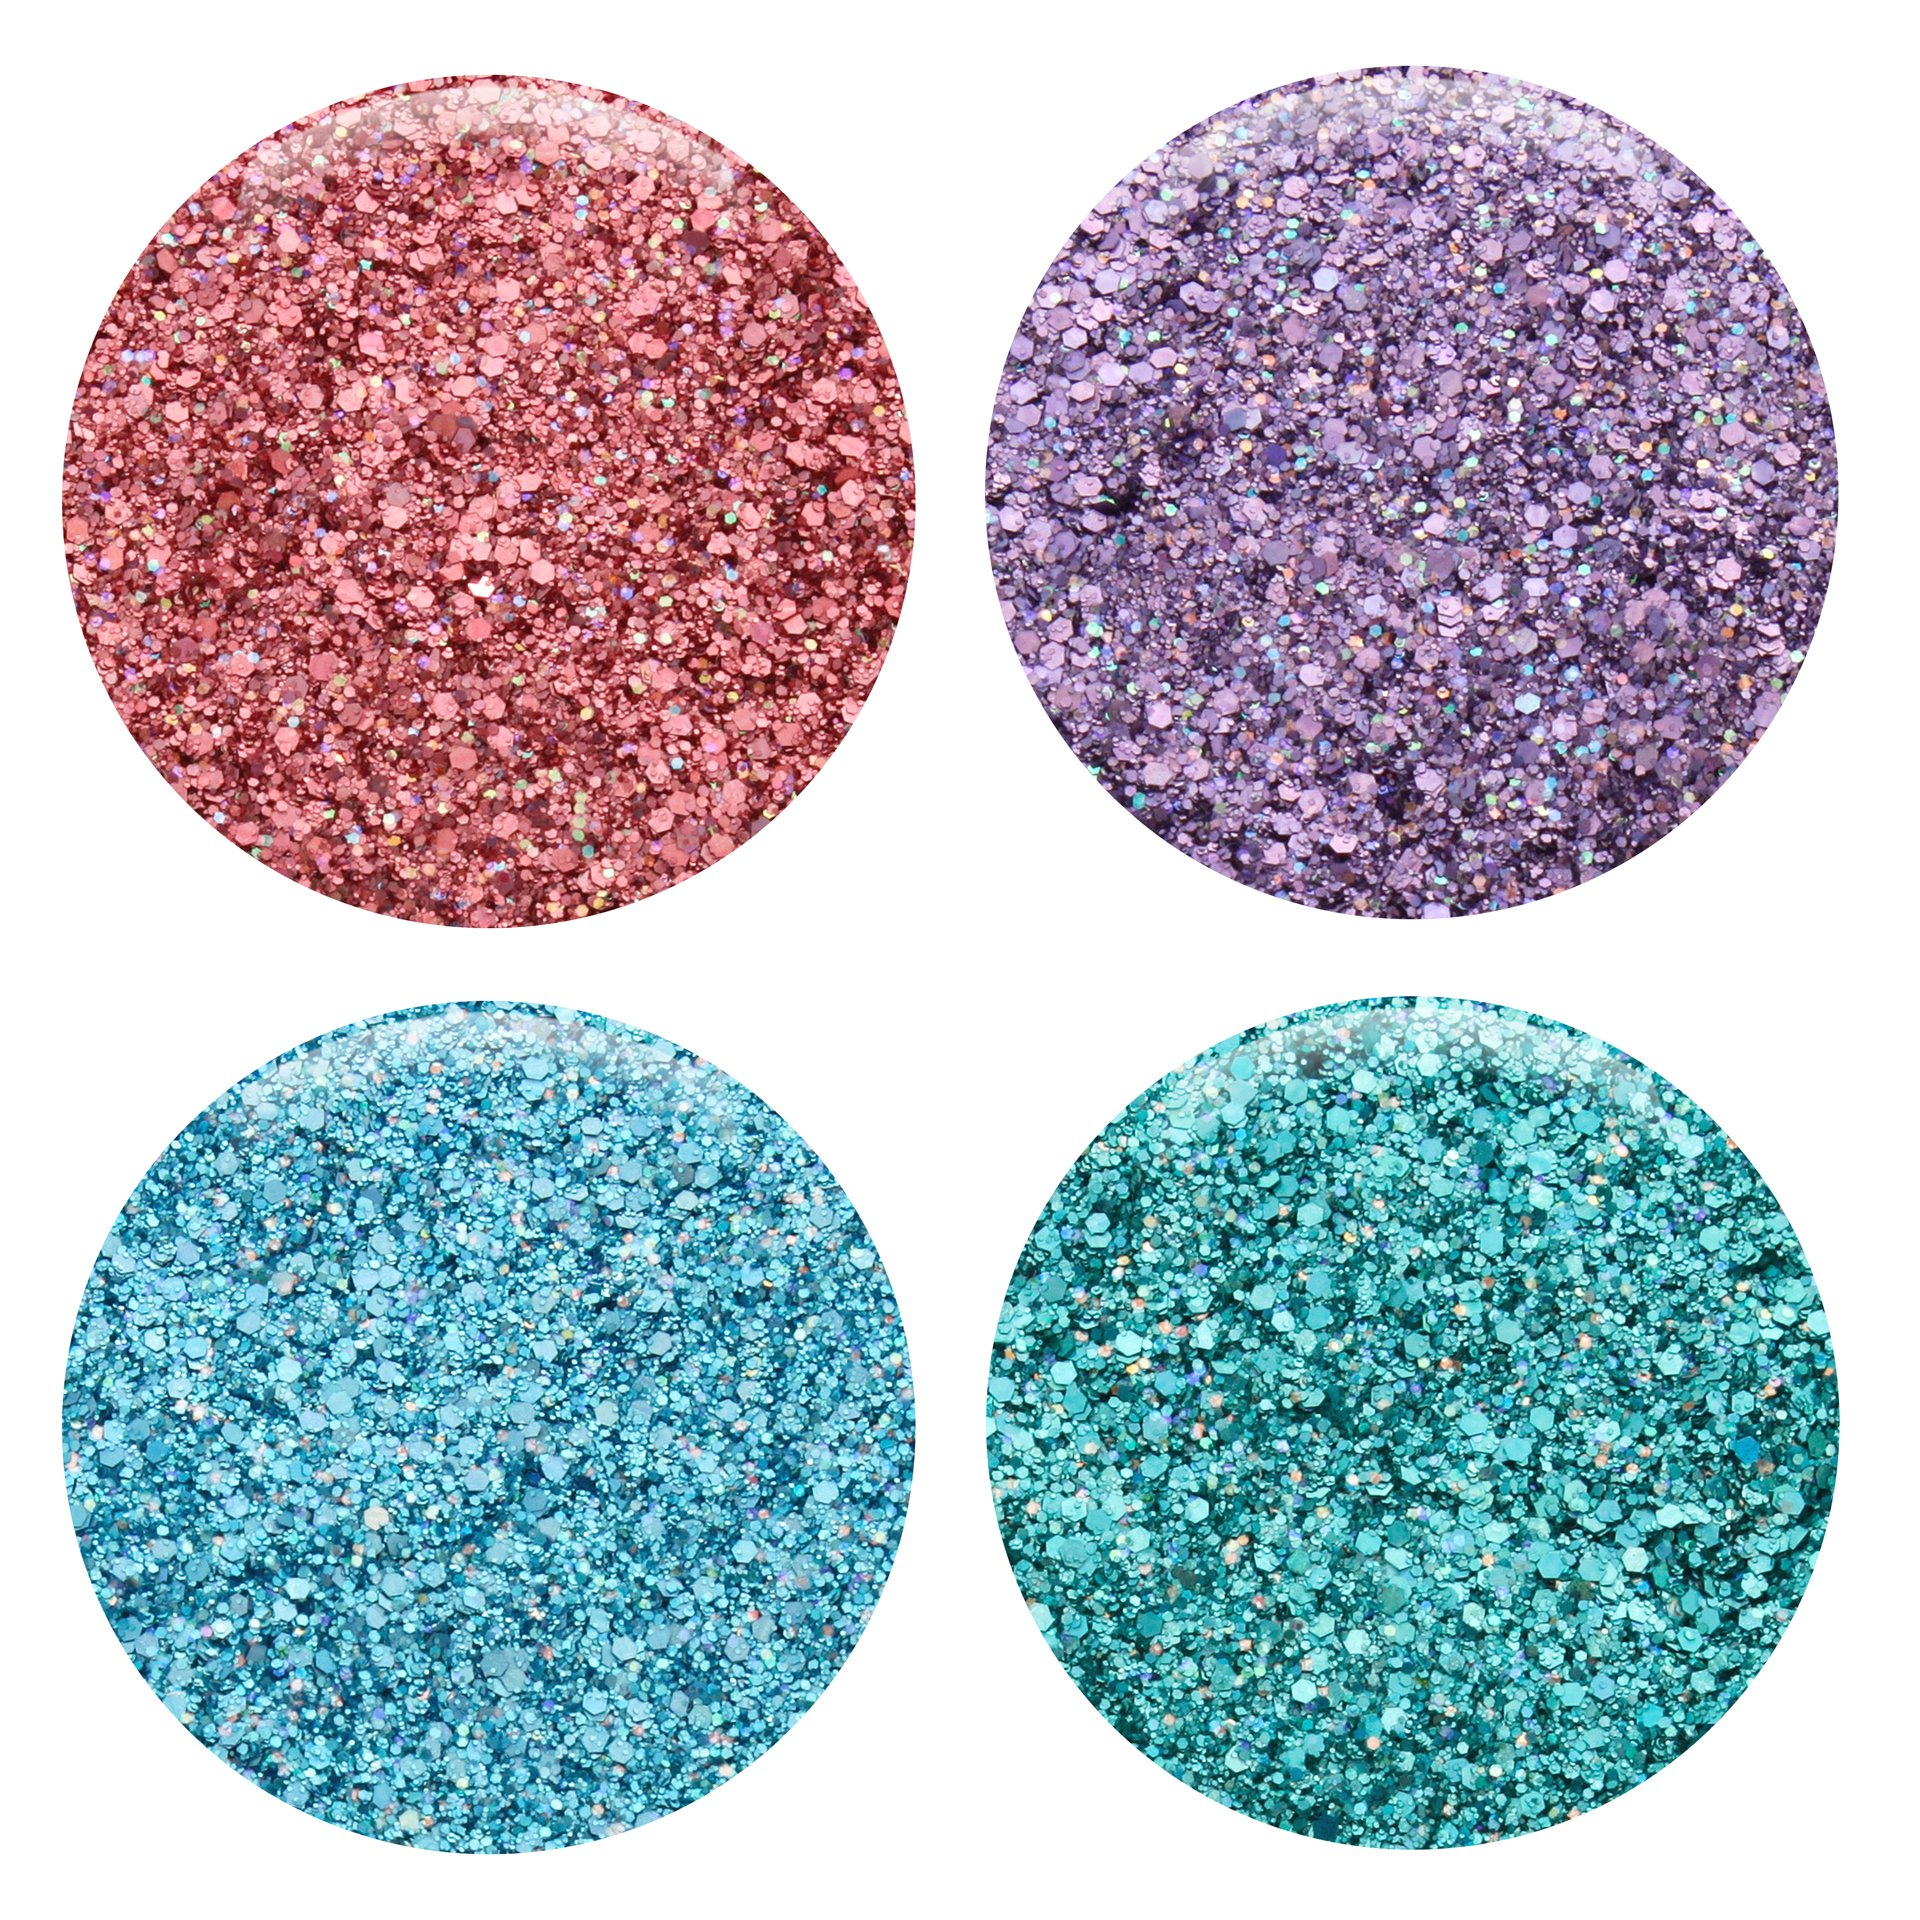 Mixed Glitter 20 Piece Kit - Includes Solvent Resistant Dust, Powder, Hexagon, Holographic, Matte Glitters - Great for Nail Art Polish, Gels, Art and Crafts, Paints & Acrylics Supplies - 1/4 OZ Jars by Glitties (Image #3)